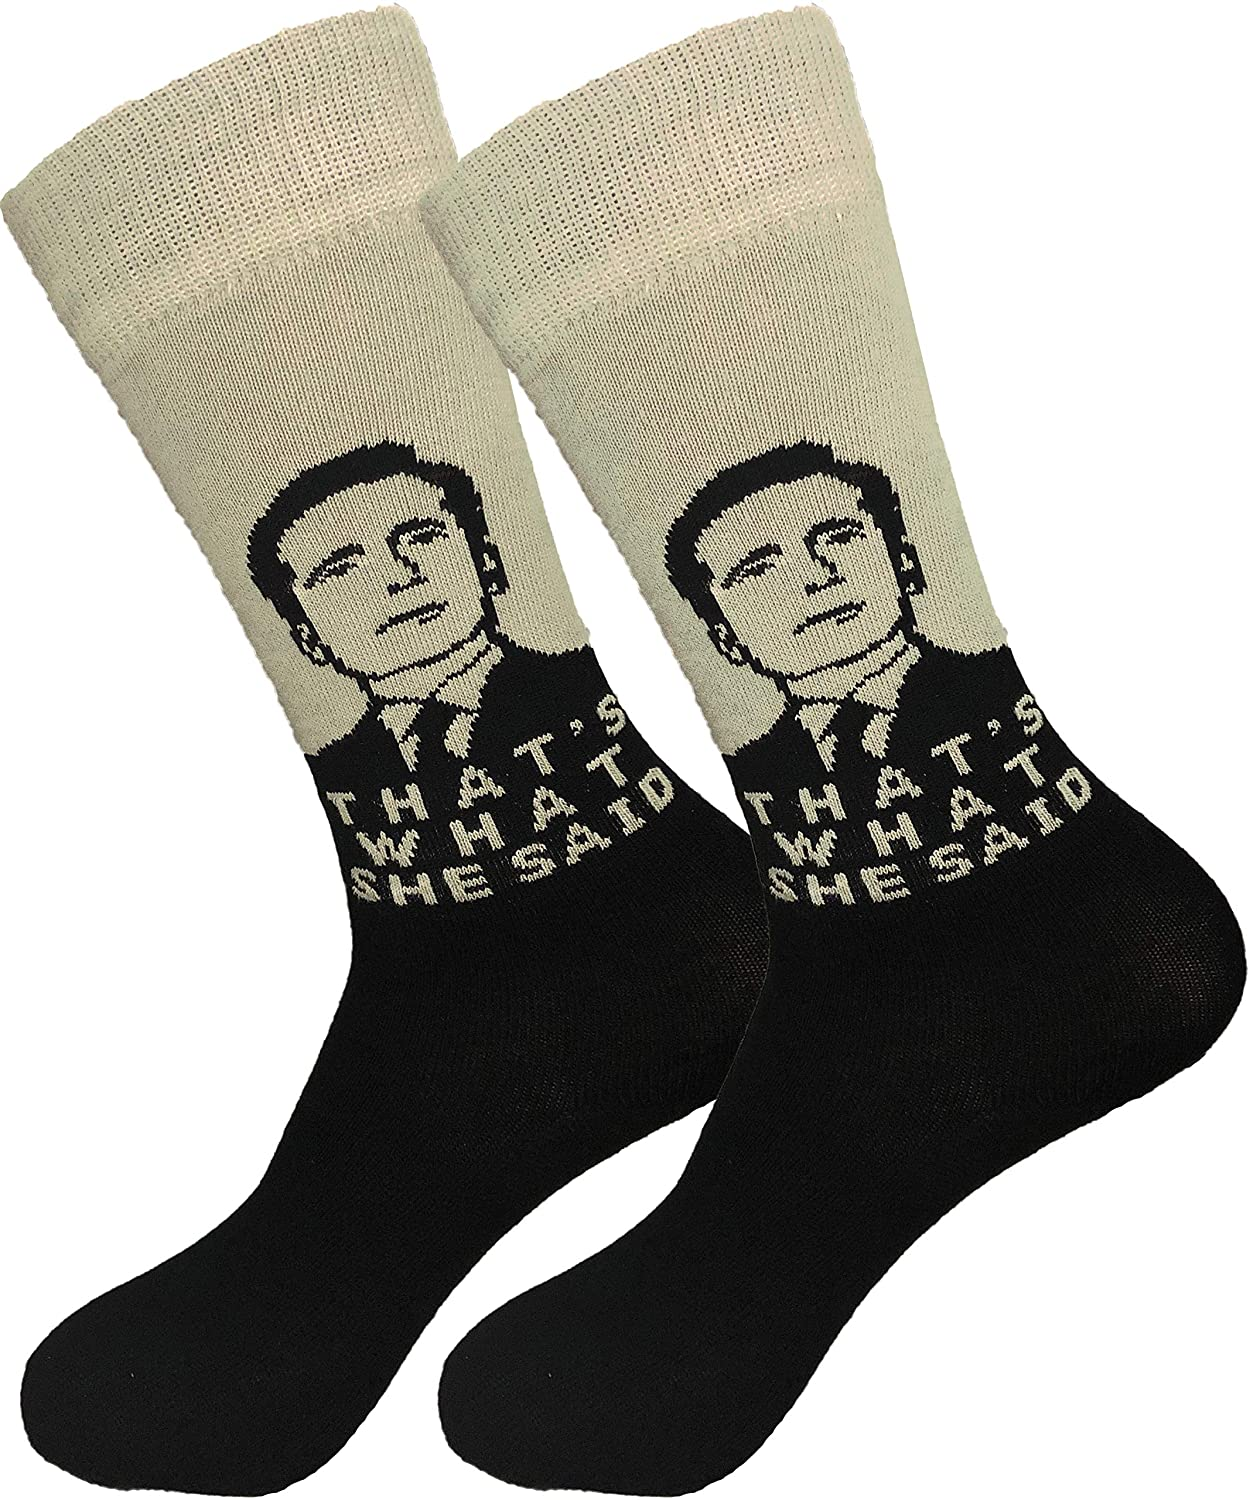 Balanced Co. That's What She Said Dress Socks Michael Scott Funny Socks Crazy Socks Casual Cotton Crew Socks